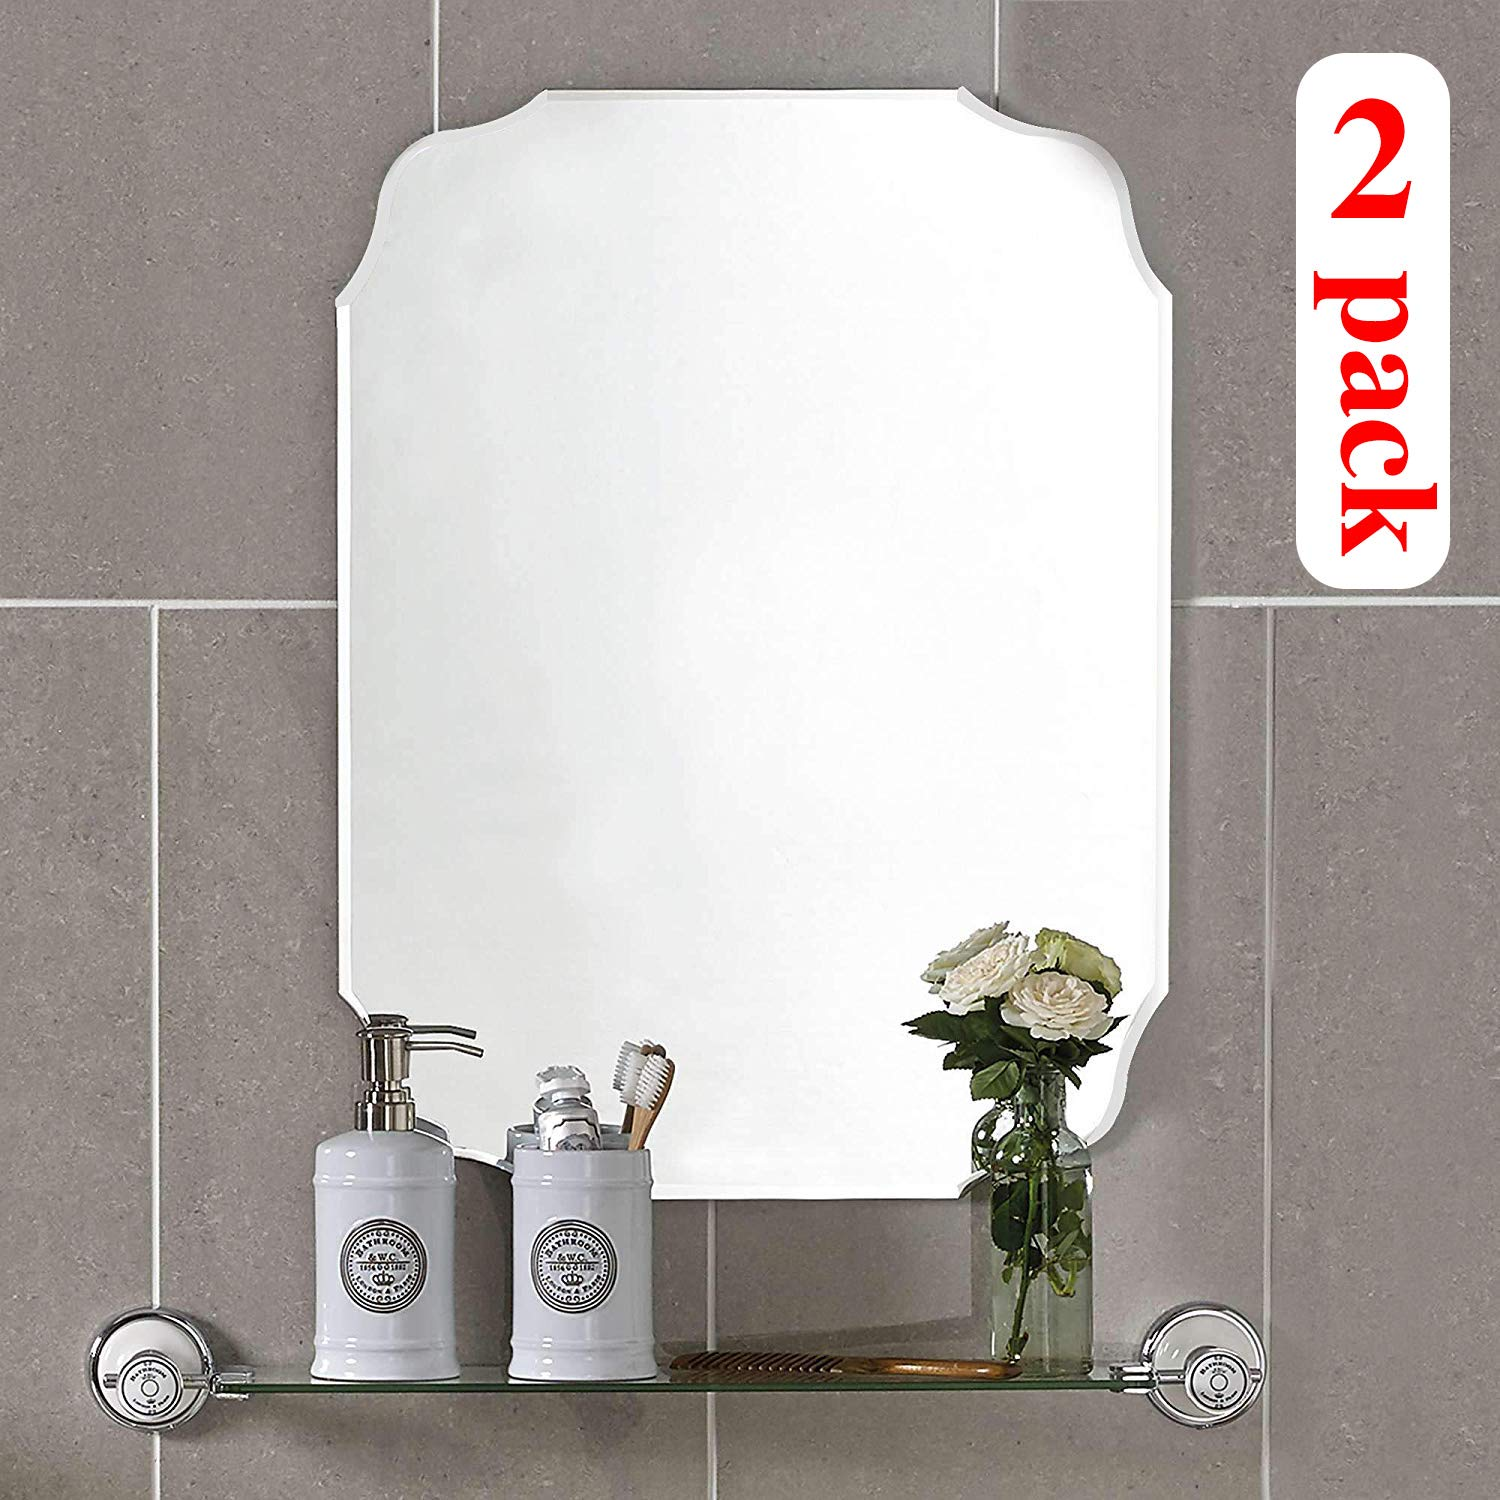 Wall Mirror with a Silver Backed Mirrored Glass Panel Best for Vanity, Bedroom, or Bathroom (18''x 24'' 2Pack)